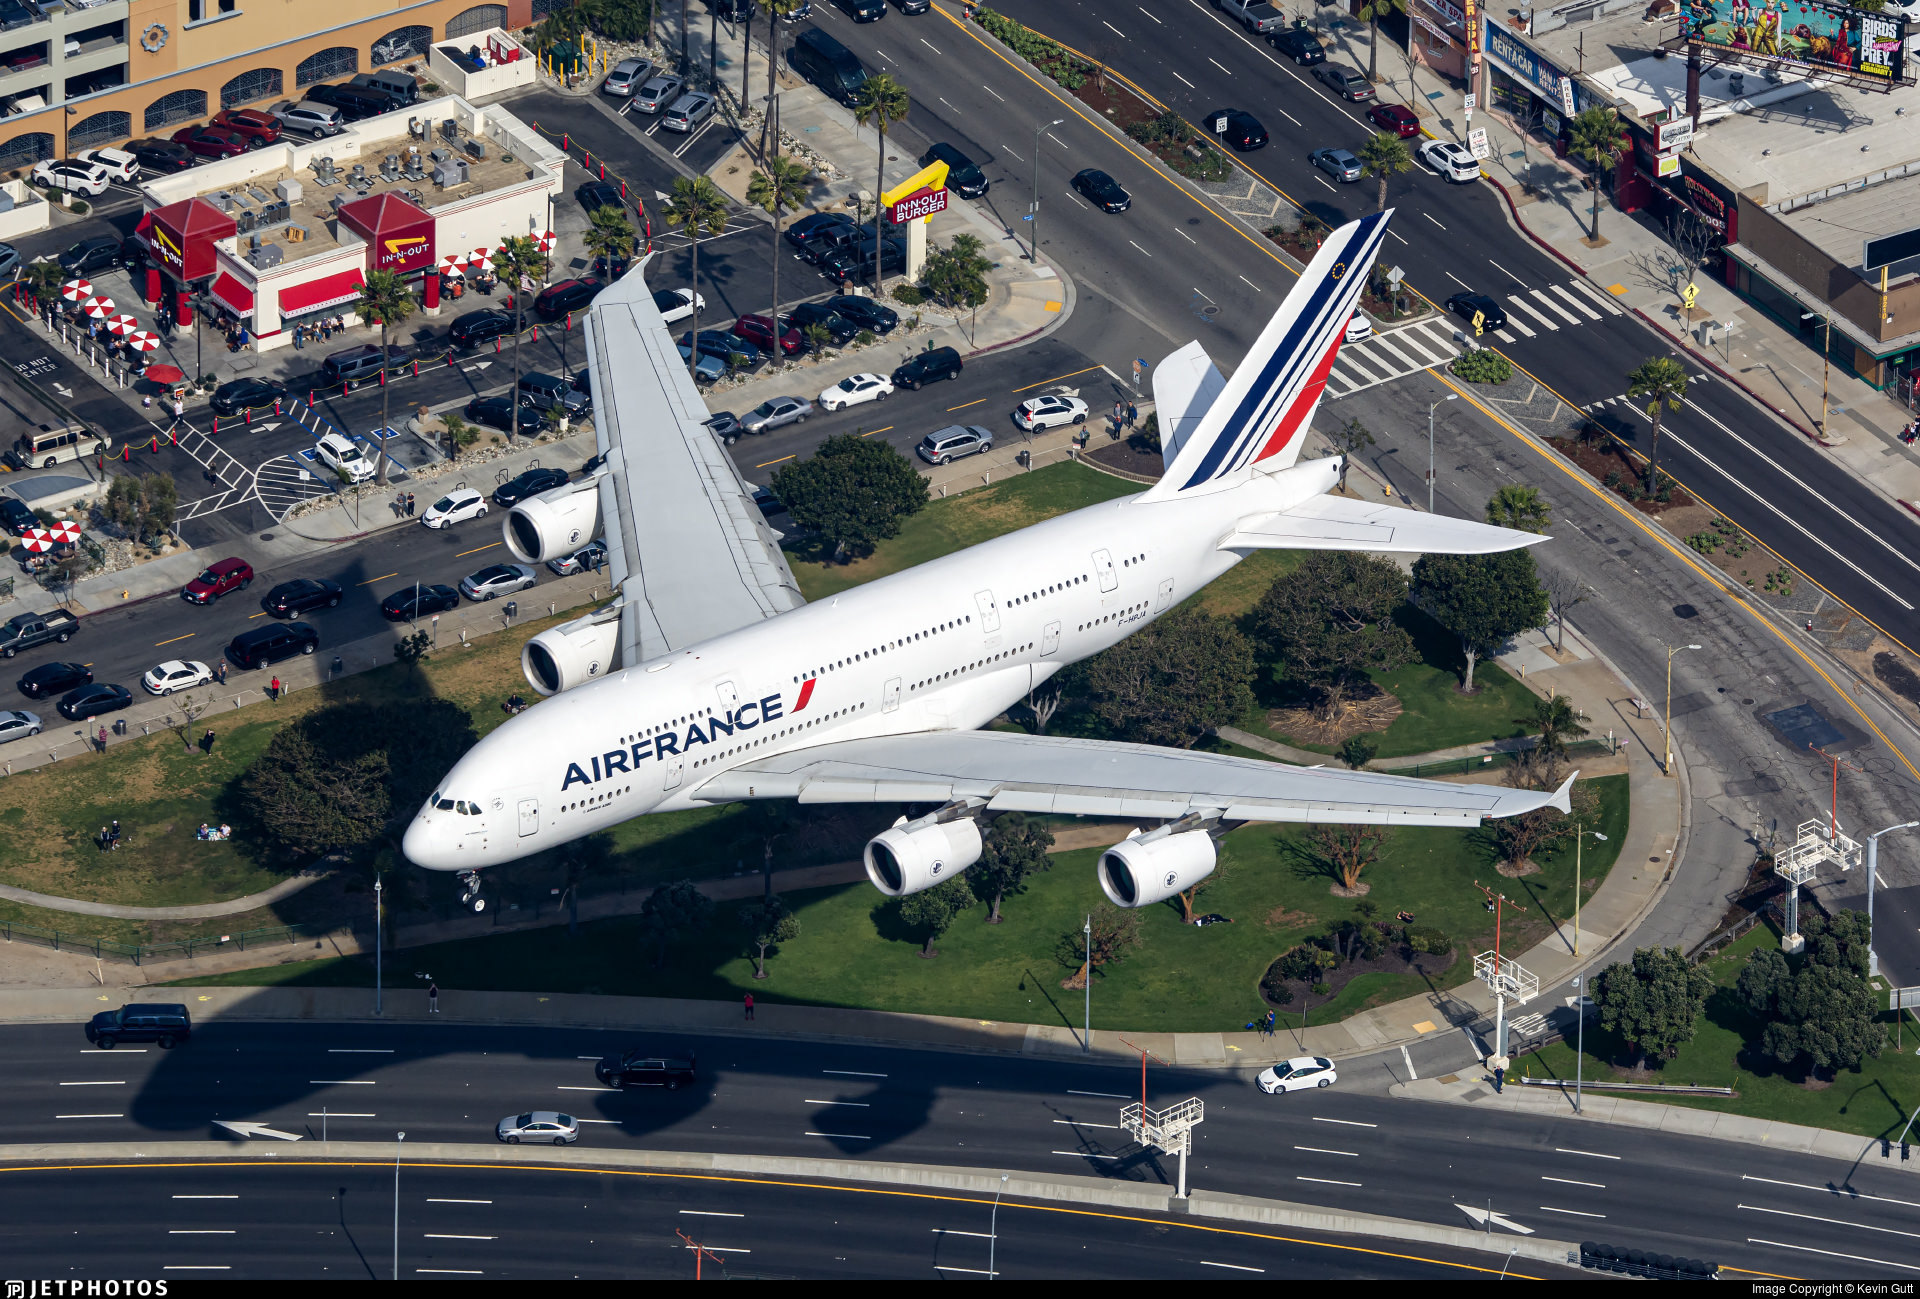 An Air France A380 landing in Los Angeles